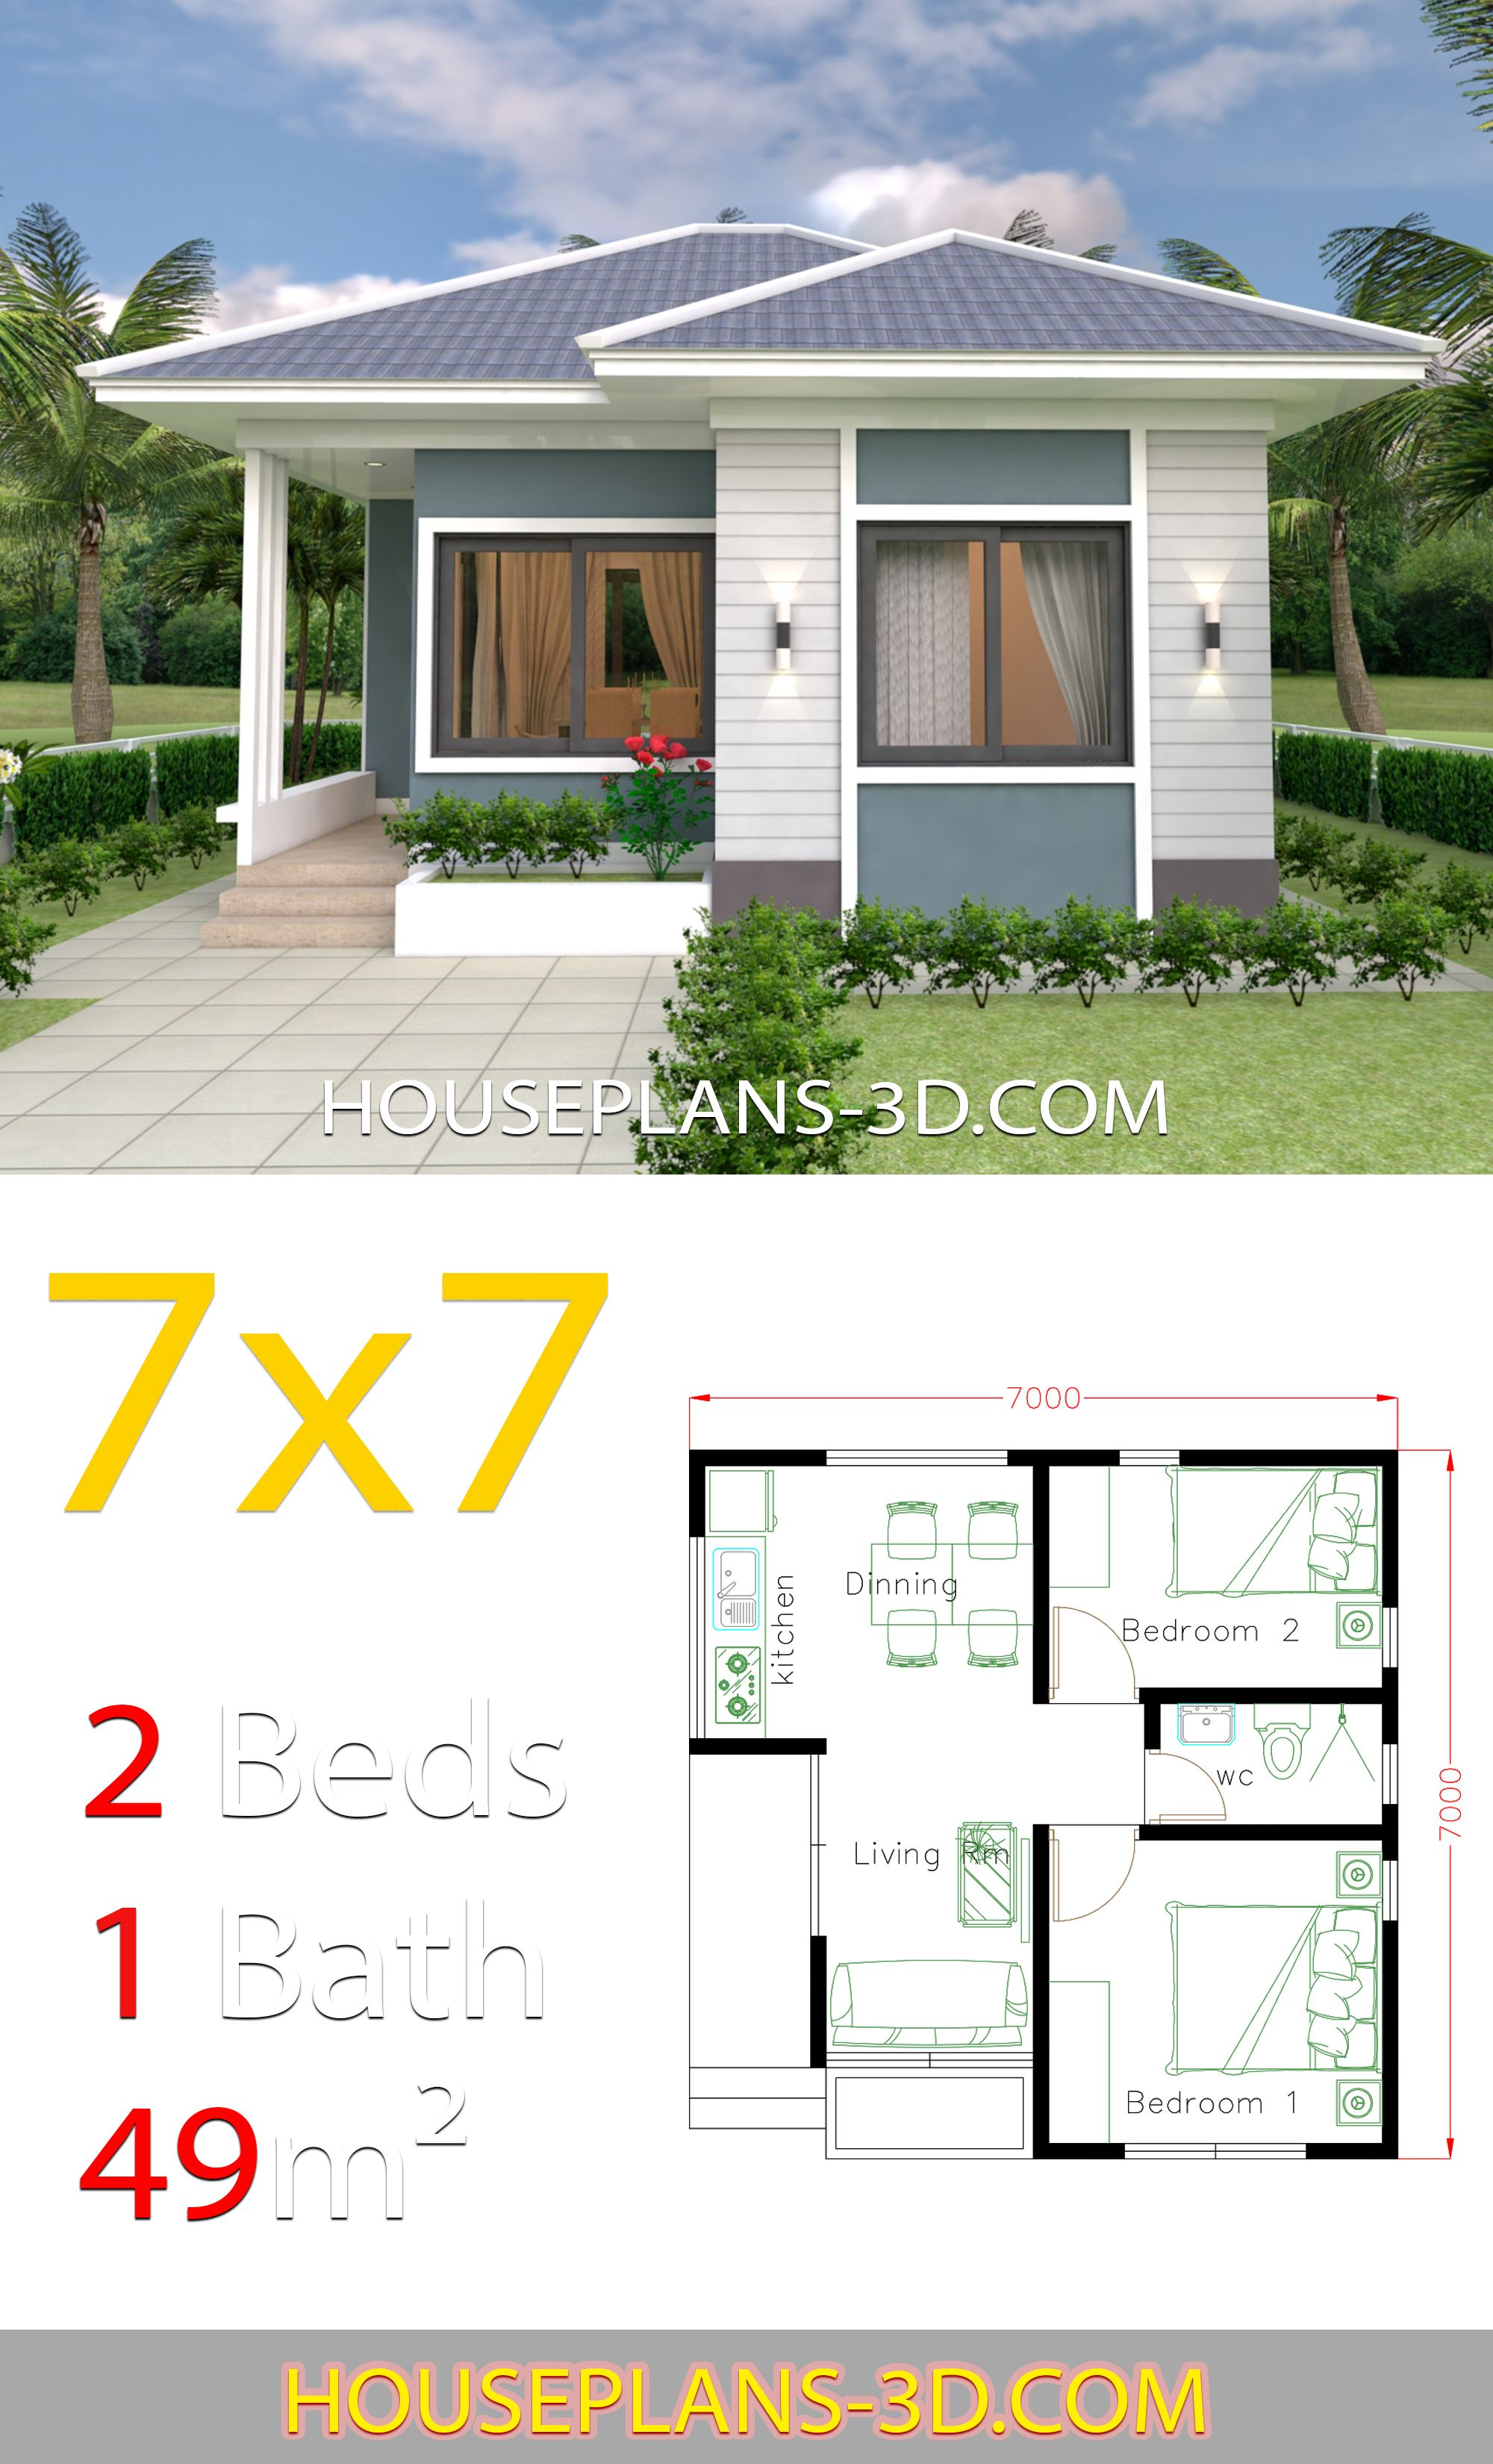 House Design 7x7 With 2 Bedrooms Full Plans House Plans 3d Small House Design Plans Small House Layout House Design Pictures